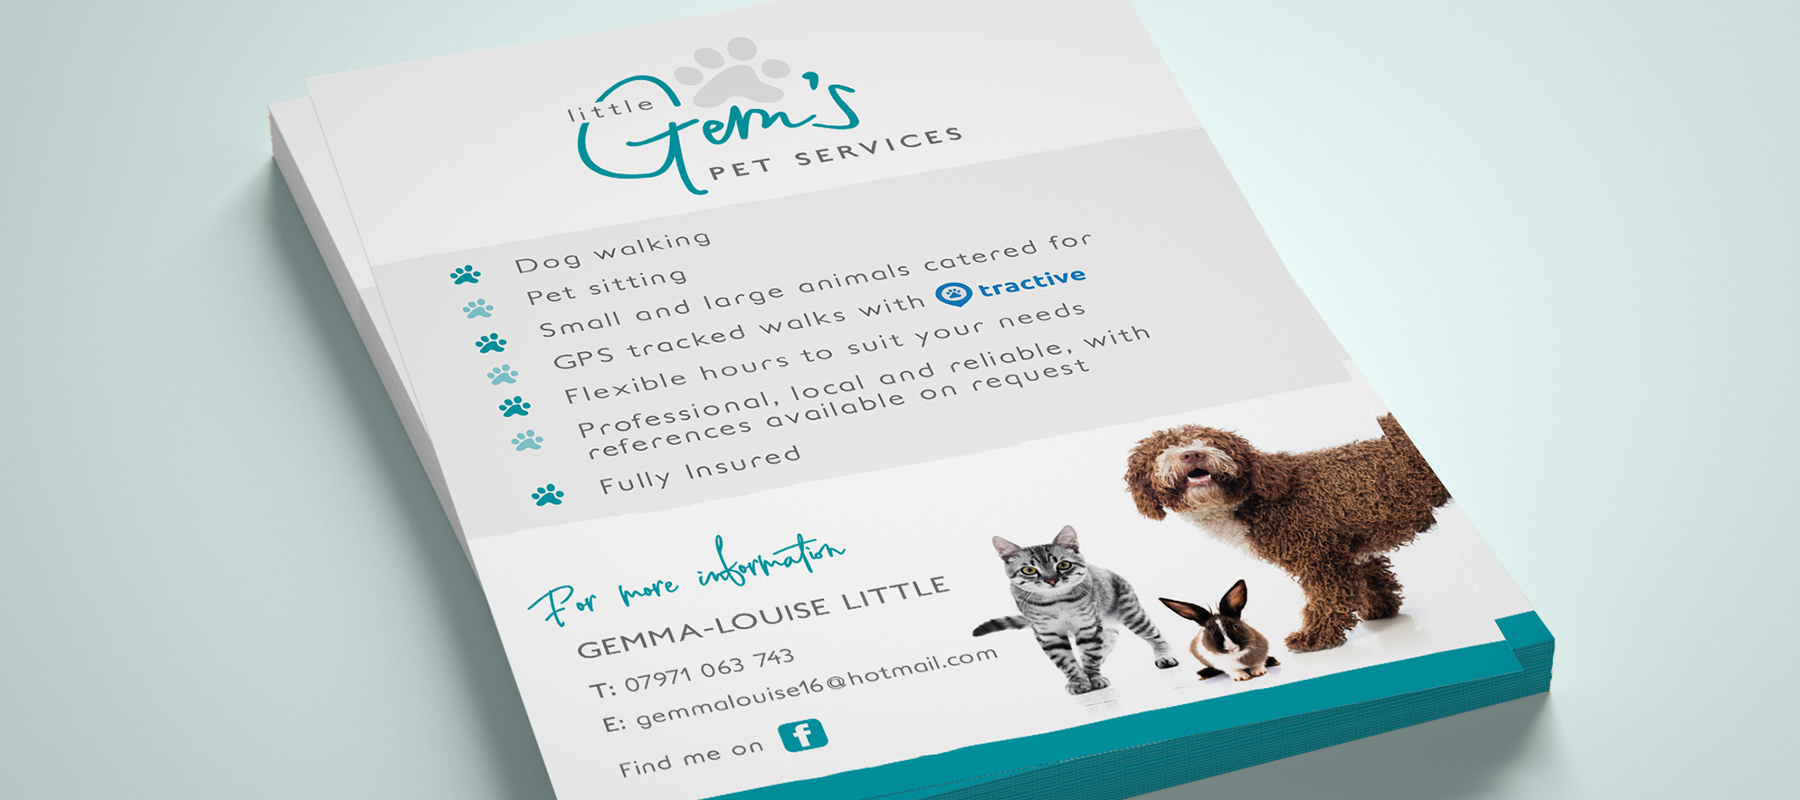 Little Gems Pet Services - Leaflets - Flyers - Flyer Design - Leaflet Design - Digital Print - Graphic Design - Sudbury - Suffolk